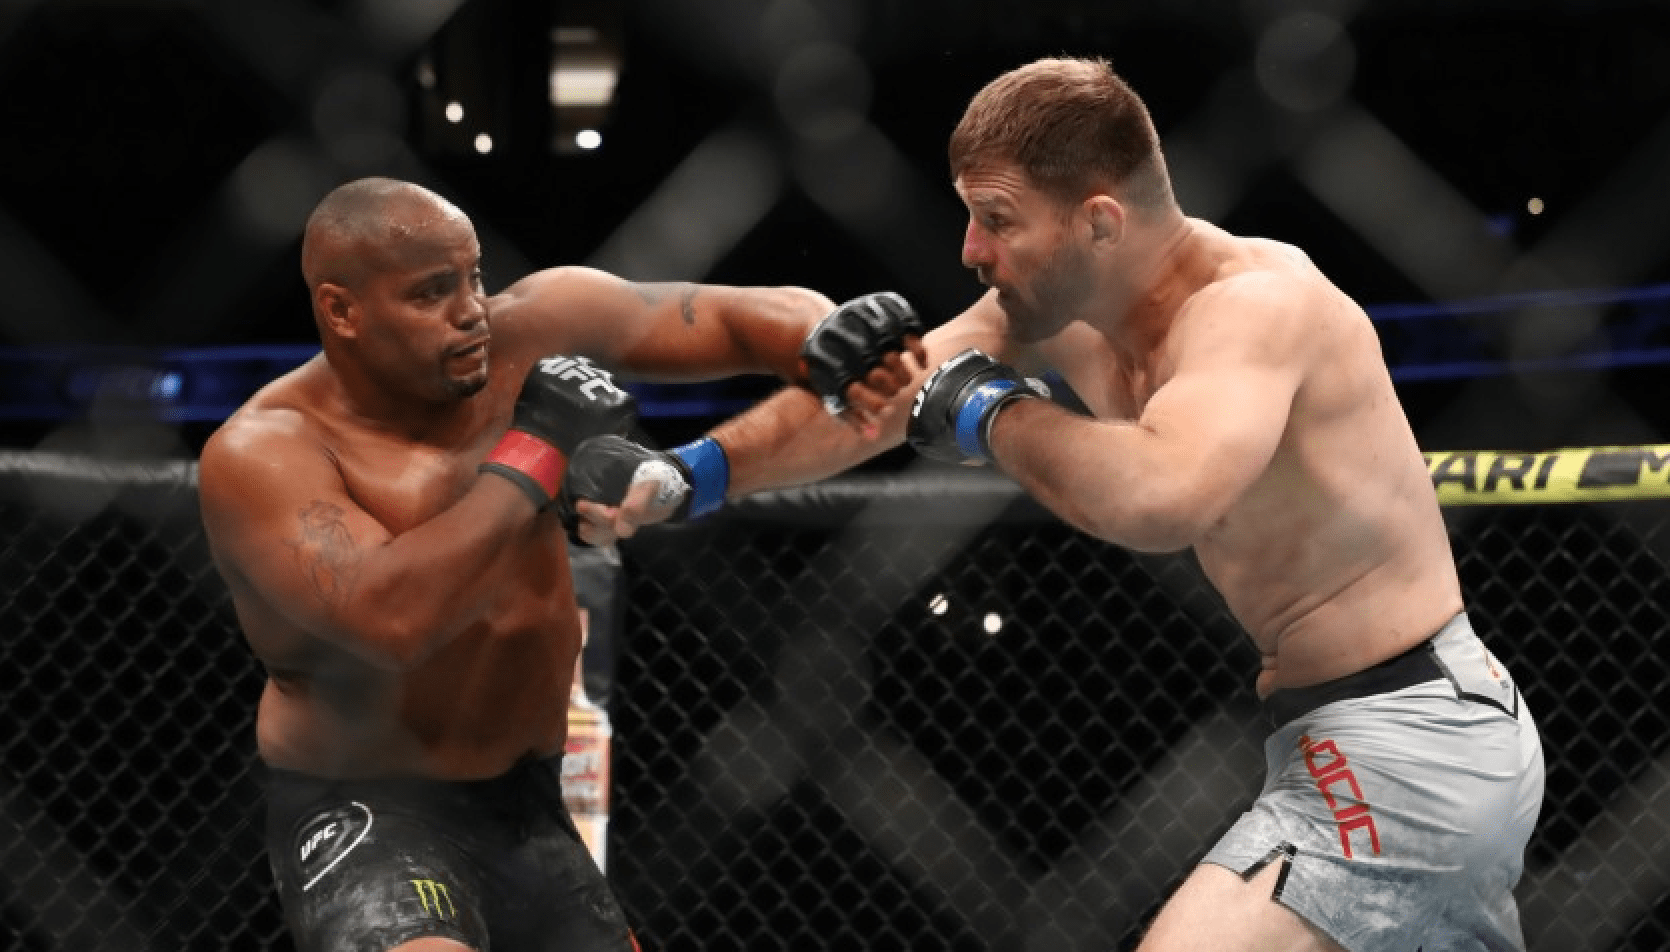 UFC: Miocic Wants To Fight Fury Next, Says DC Got Lucky In First Fight